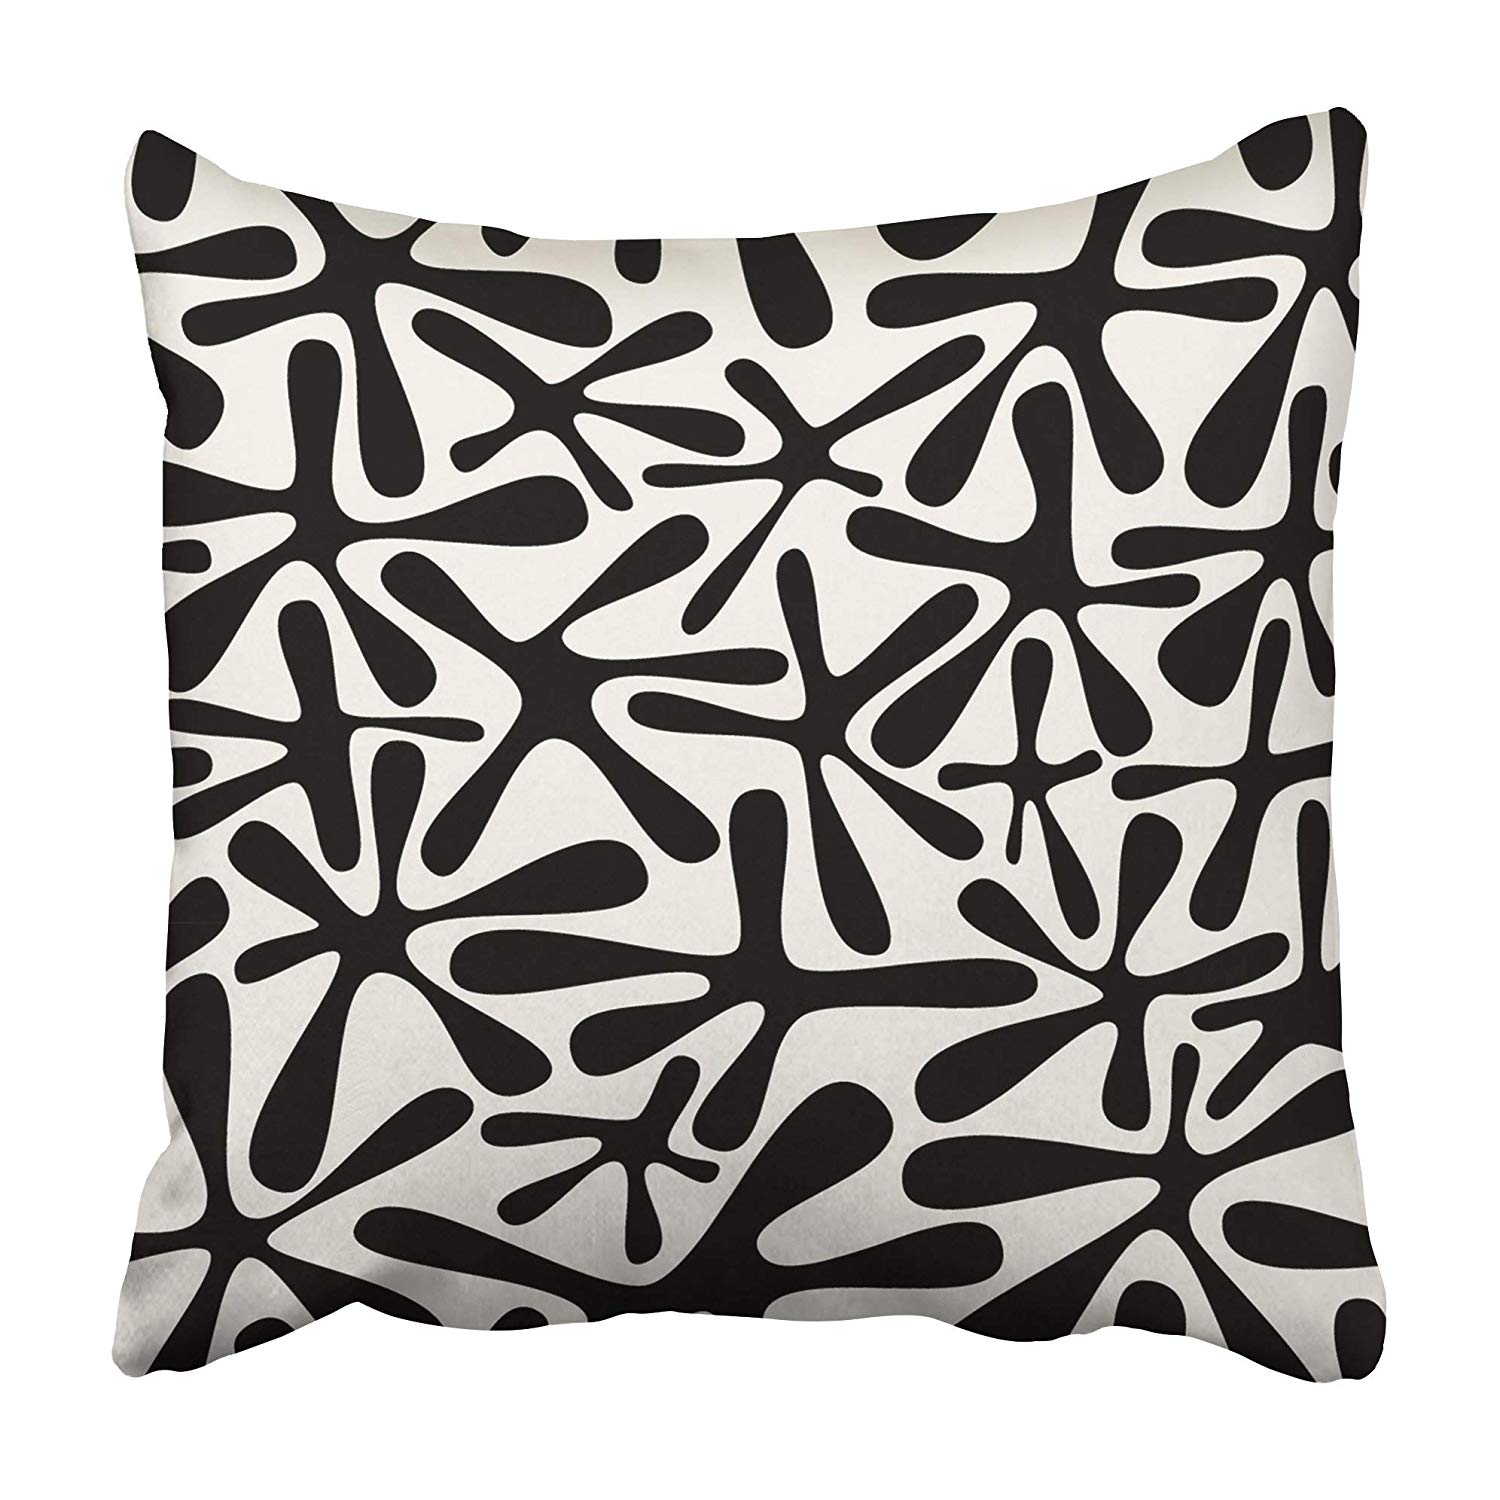 ARHOME Wall with Spots Modern Flower Floral Flourish Graphic Leaf Carpet Pillowcase 18x18 inch